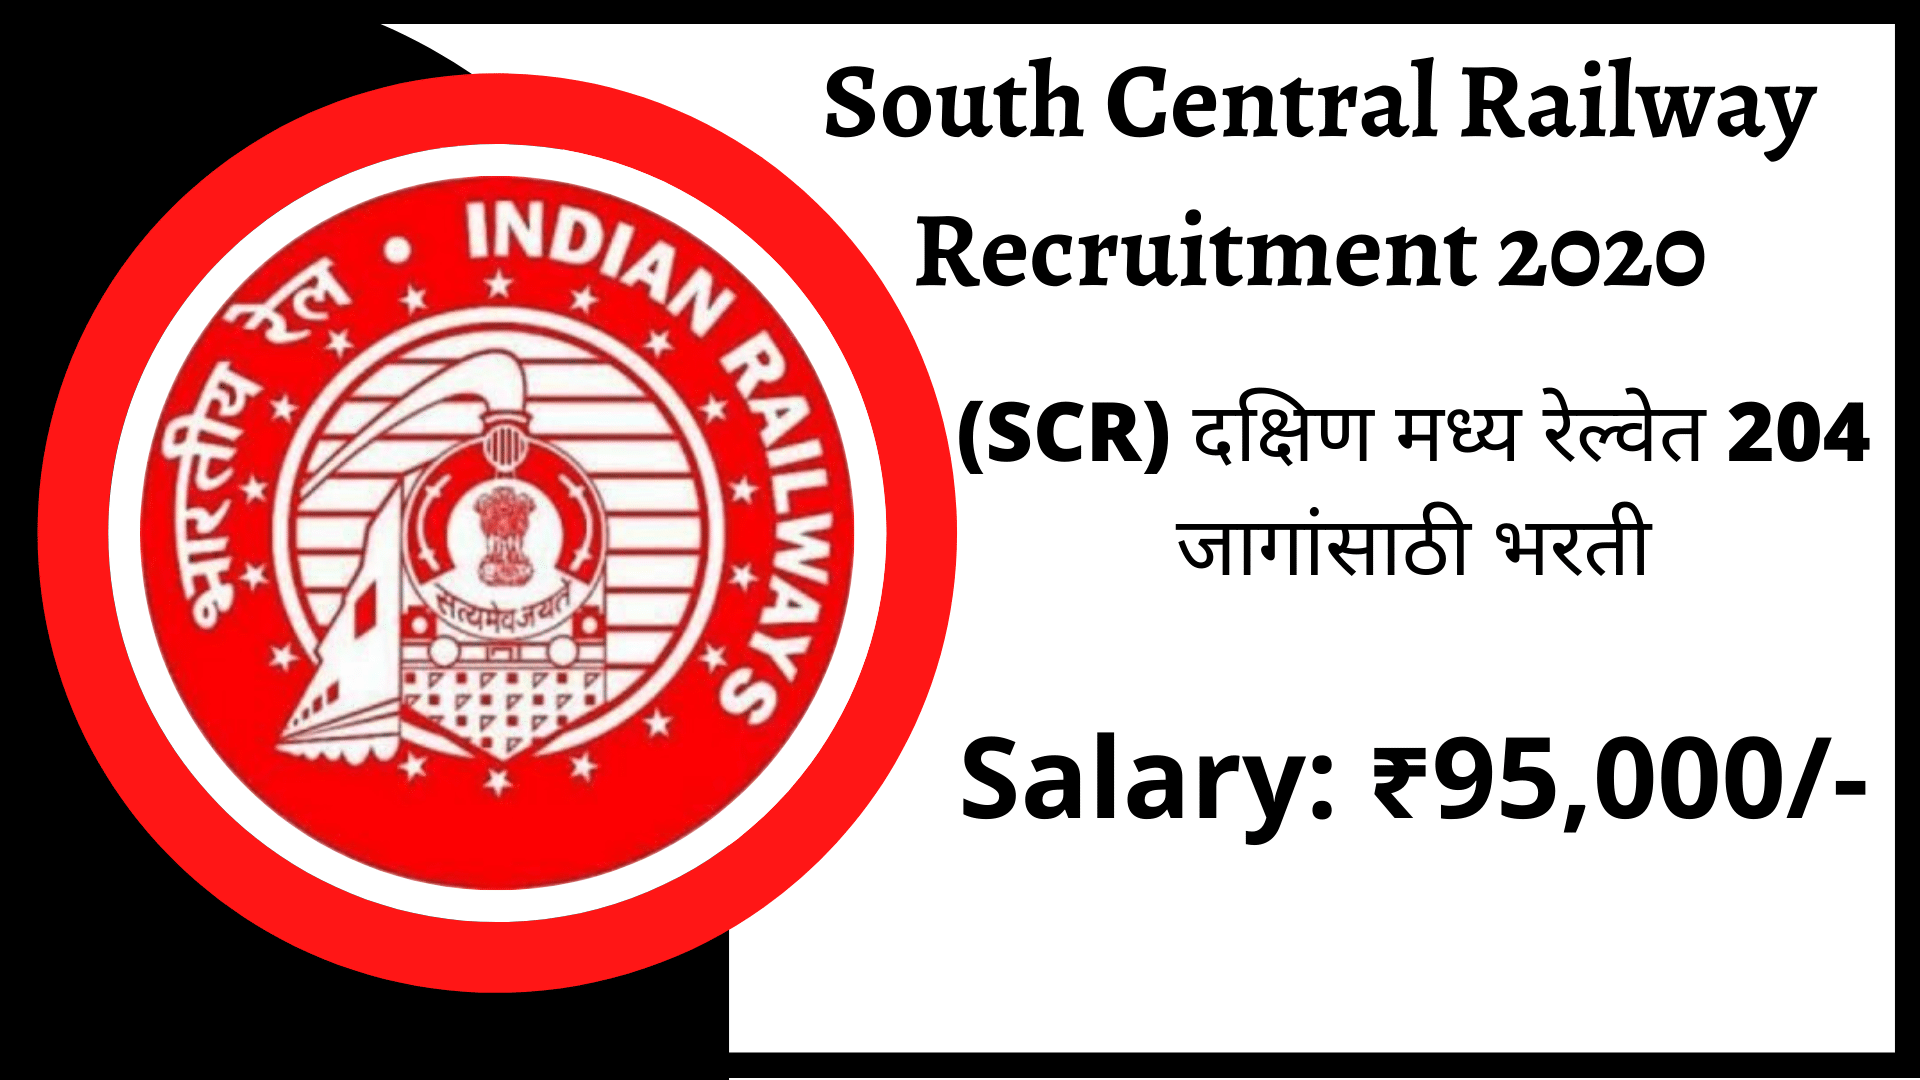 South Central Railway Recruitment 2020